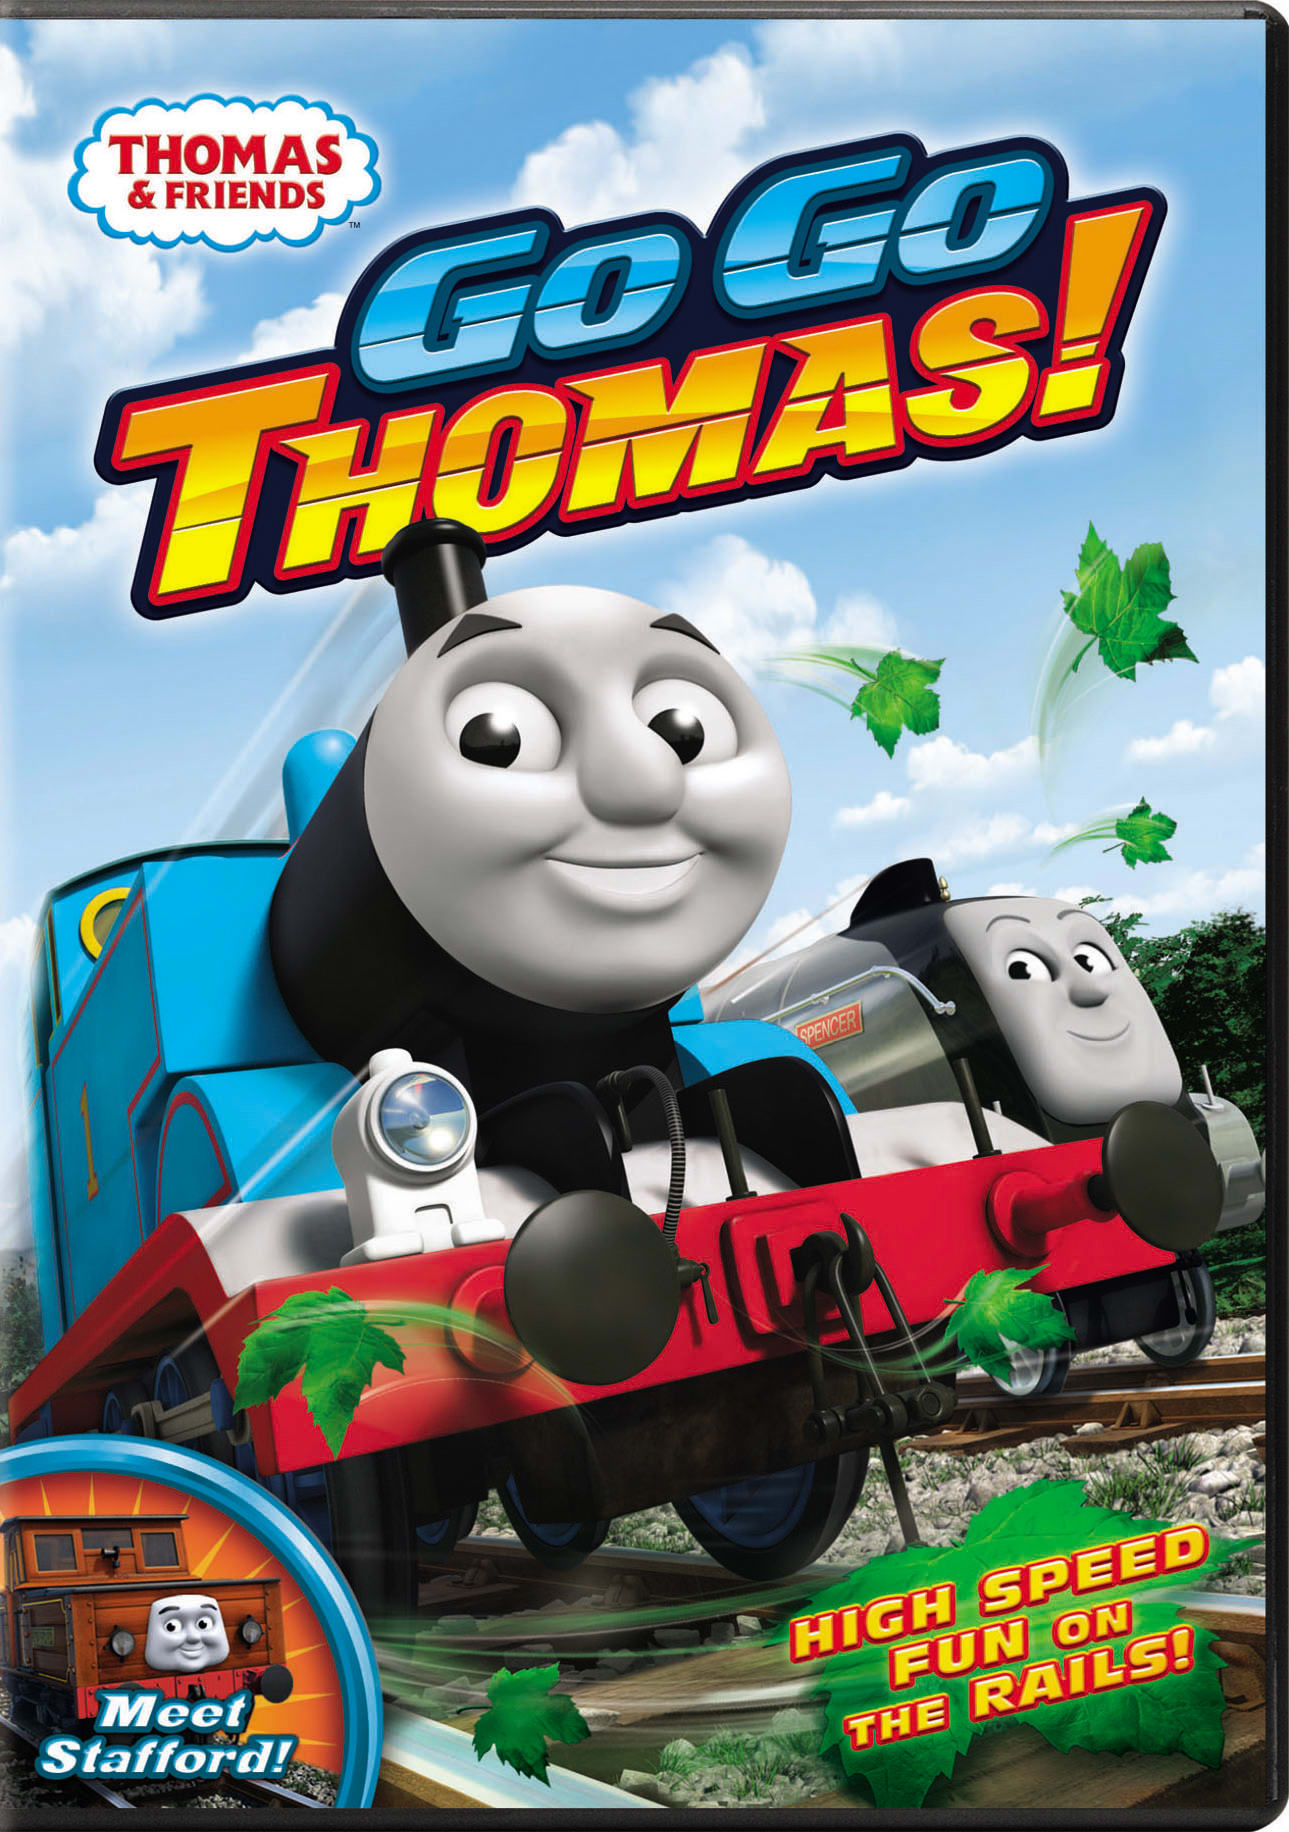 Thomas & Friends: Go Go Thomas [DVD]